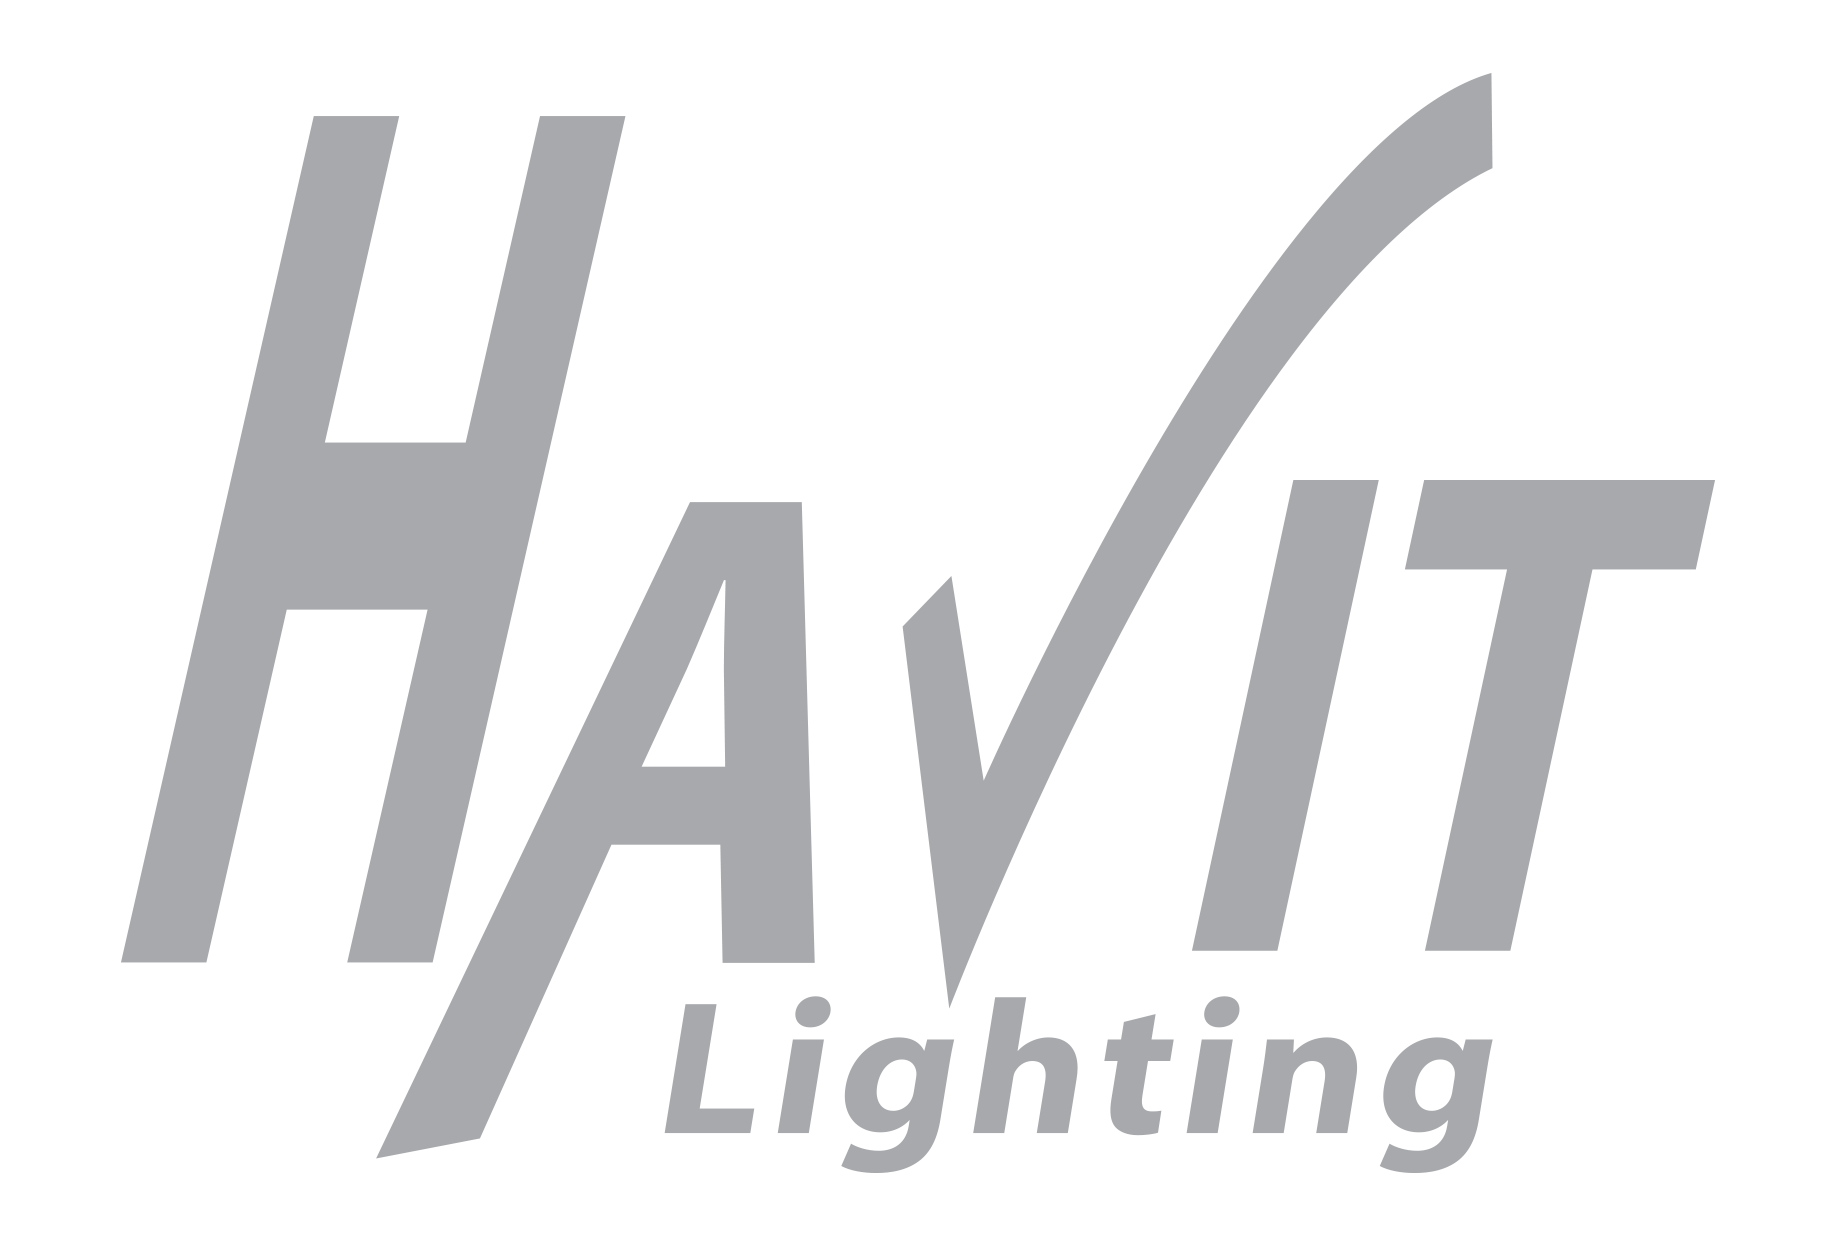 havit-logo-2016_k40-clear-bg-002